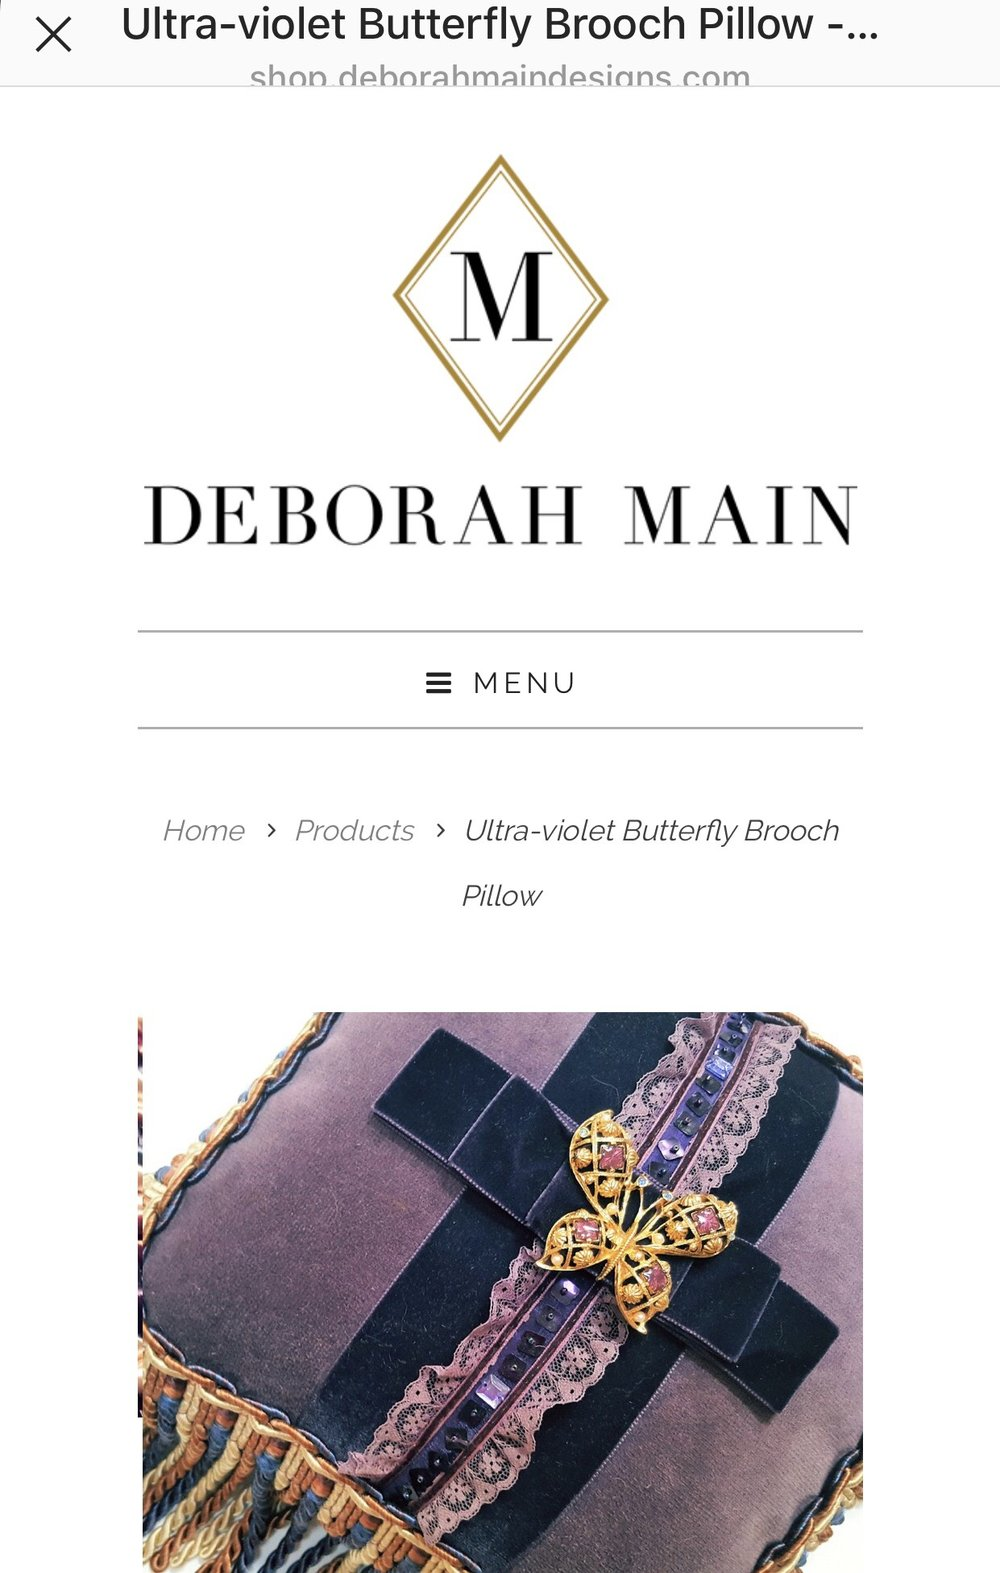 Screenshot 3 showing how the consumer is taken back to Deborah's own site, at www.deborahmaindesigns.com, when they click the SHOP NOW button on the 2nd image, from Deborah's Instagram feed at http://instagram.com/deborahamaindesigns.